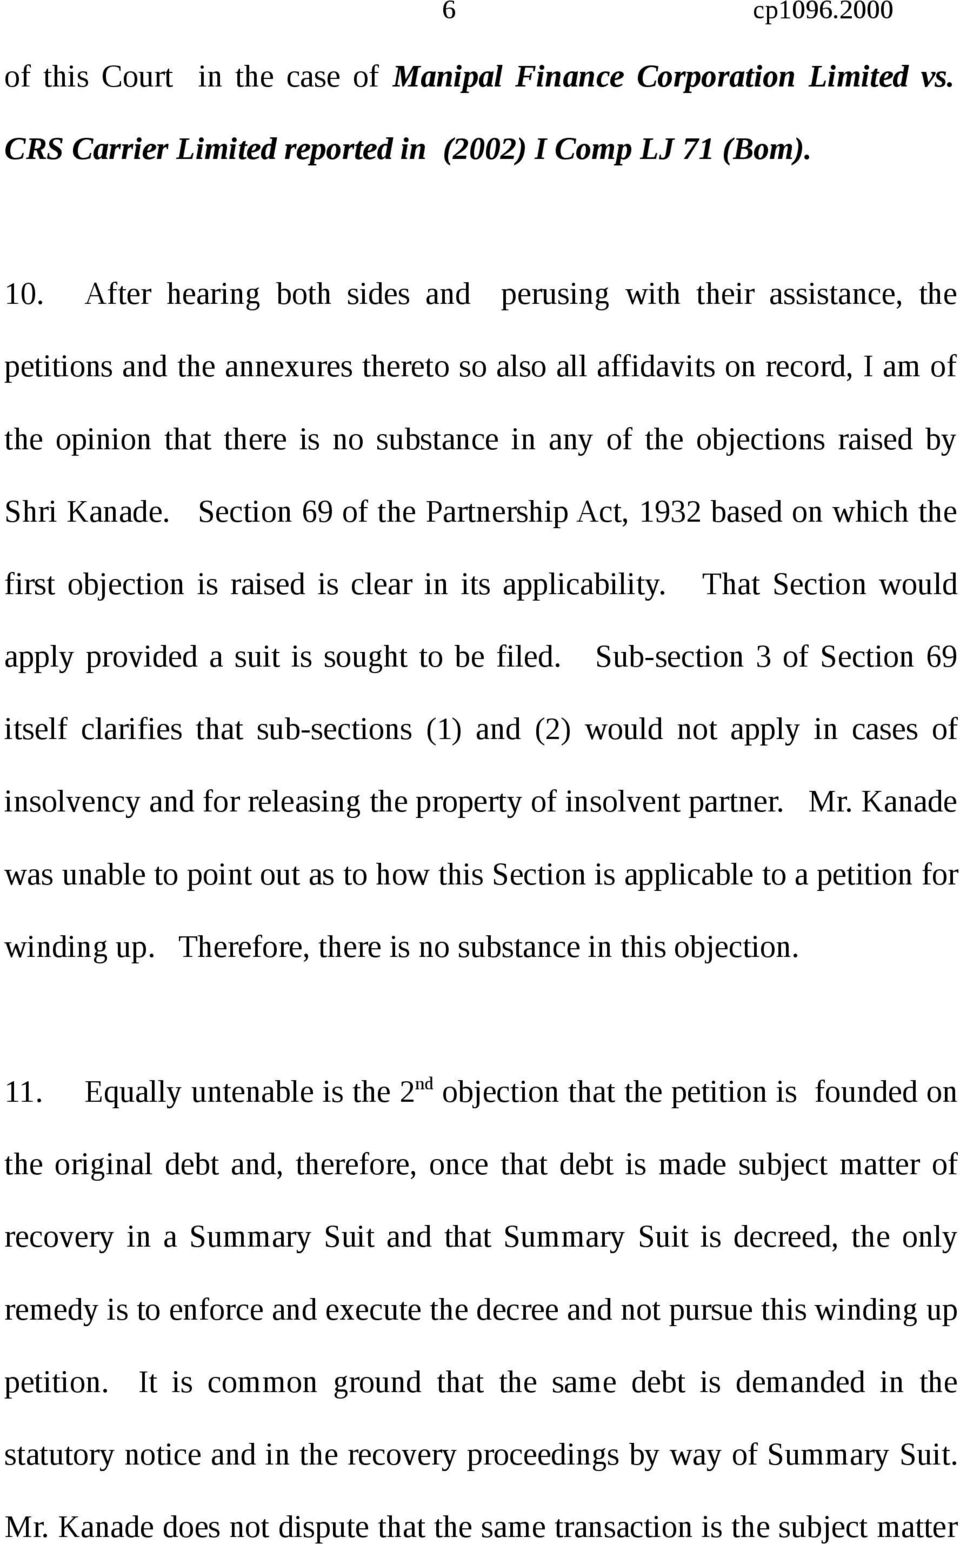 objections raised by Shri Kanade. Section 69 of the Partnership Act, 1932 based on which the first objection is raised is clear in its applicability.